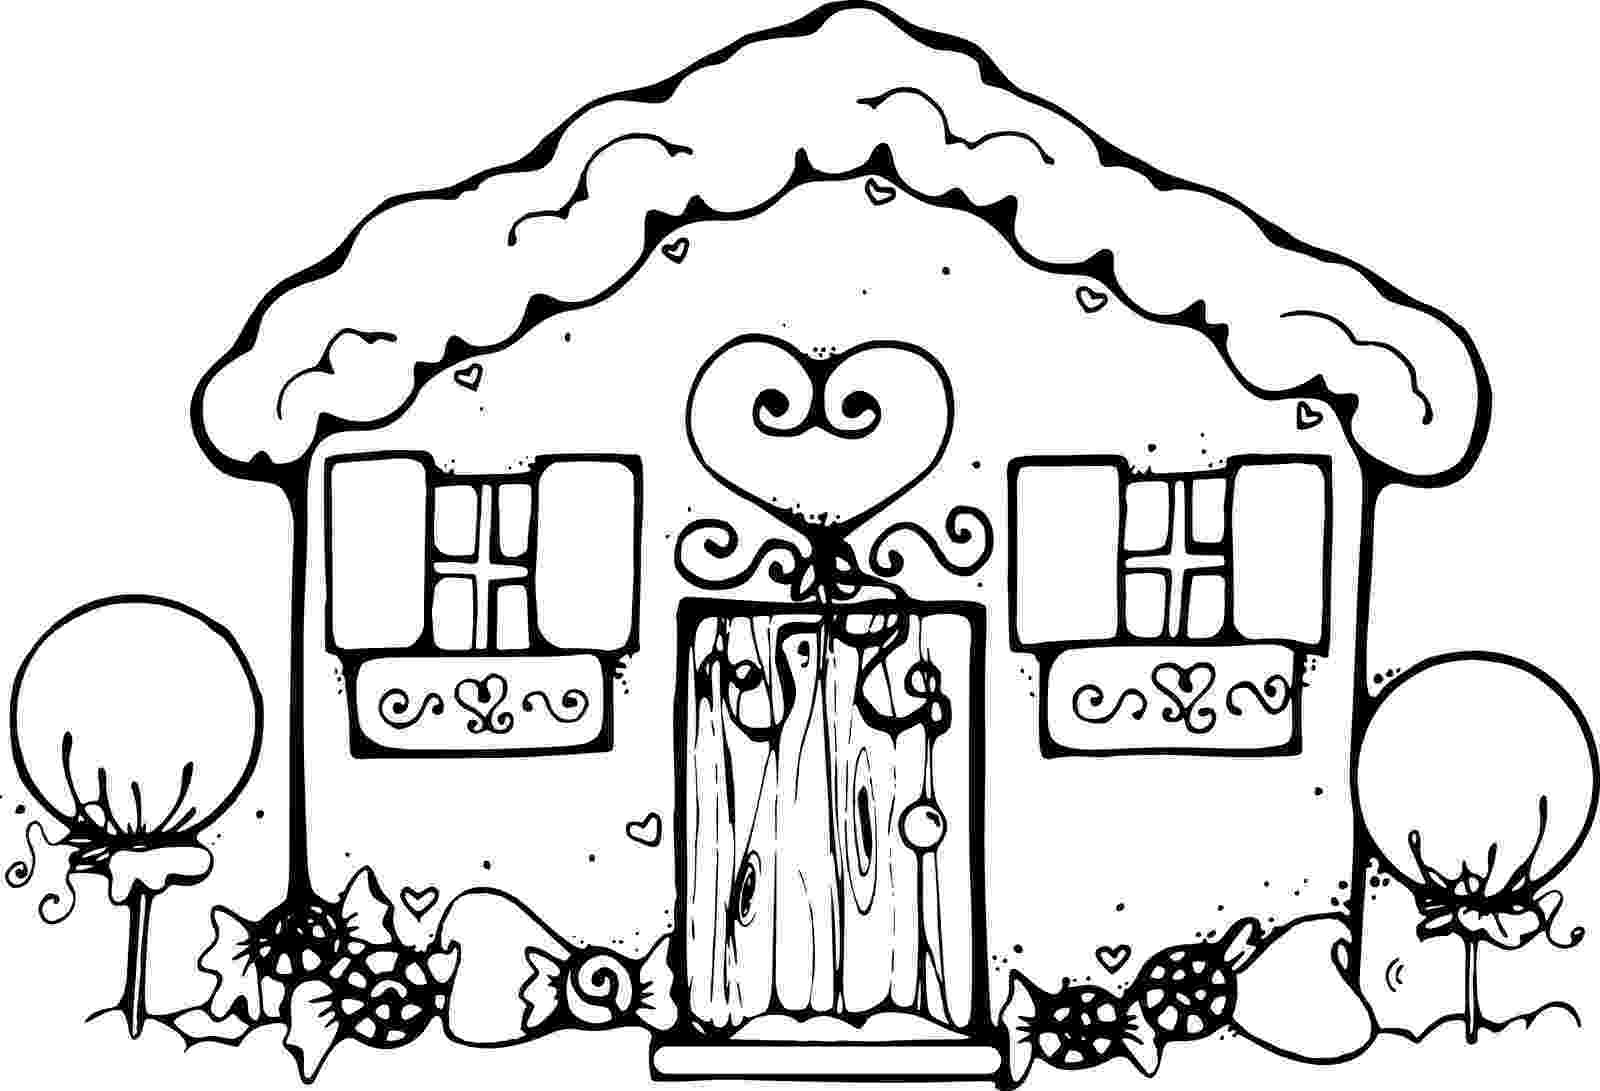 gingerbread house pictures to color printable gingerbread house coloring pages for kids house color pictures to gingerbread